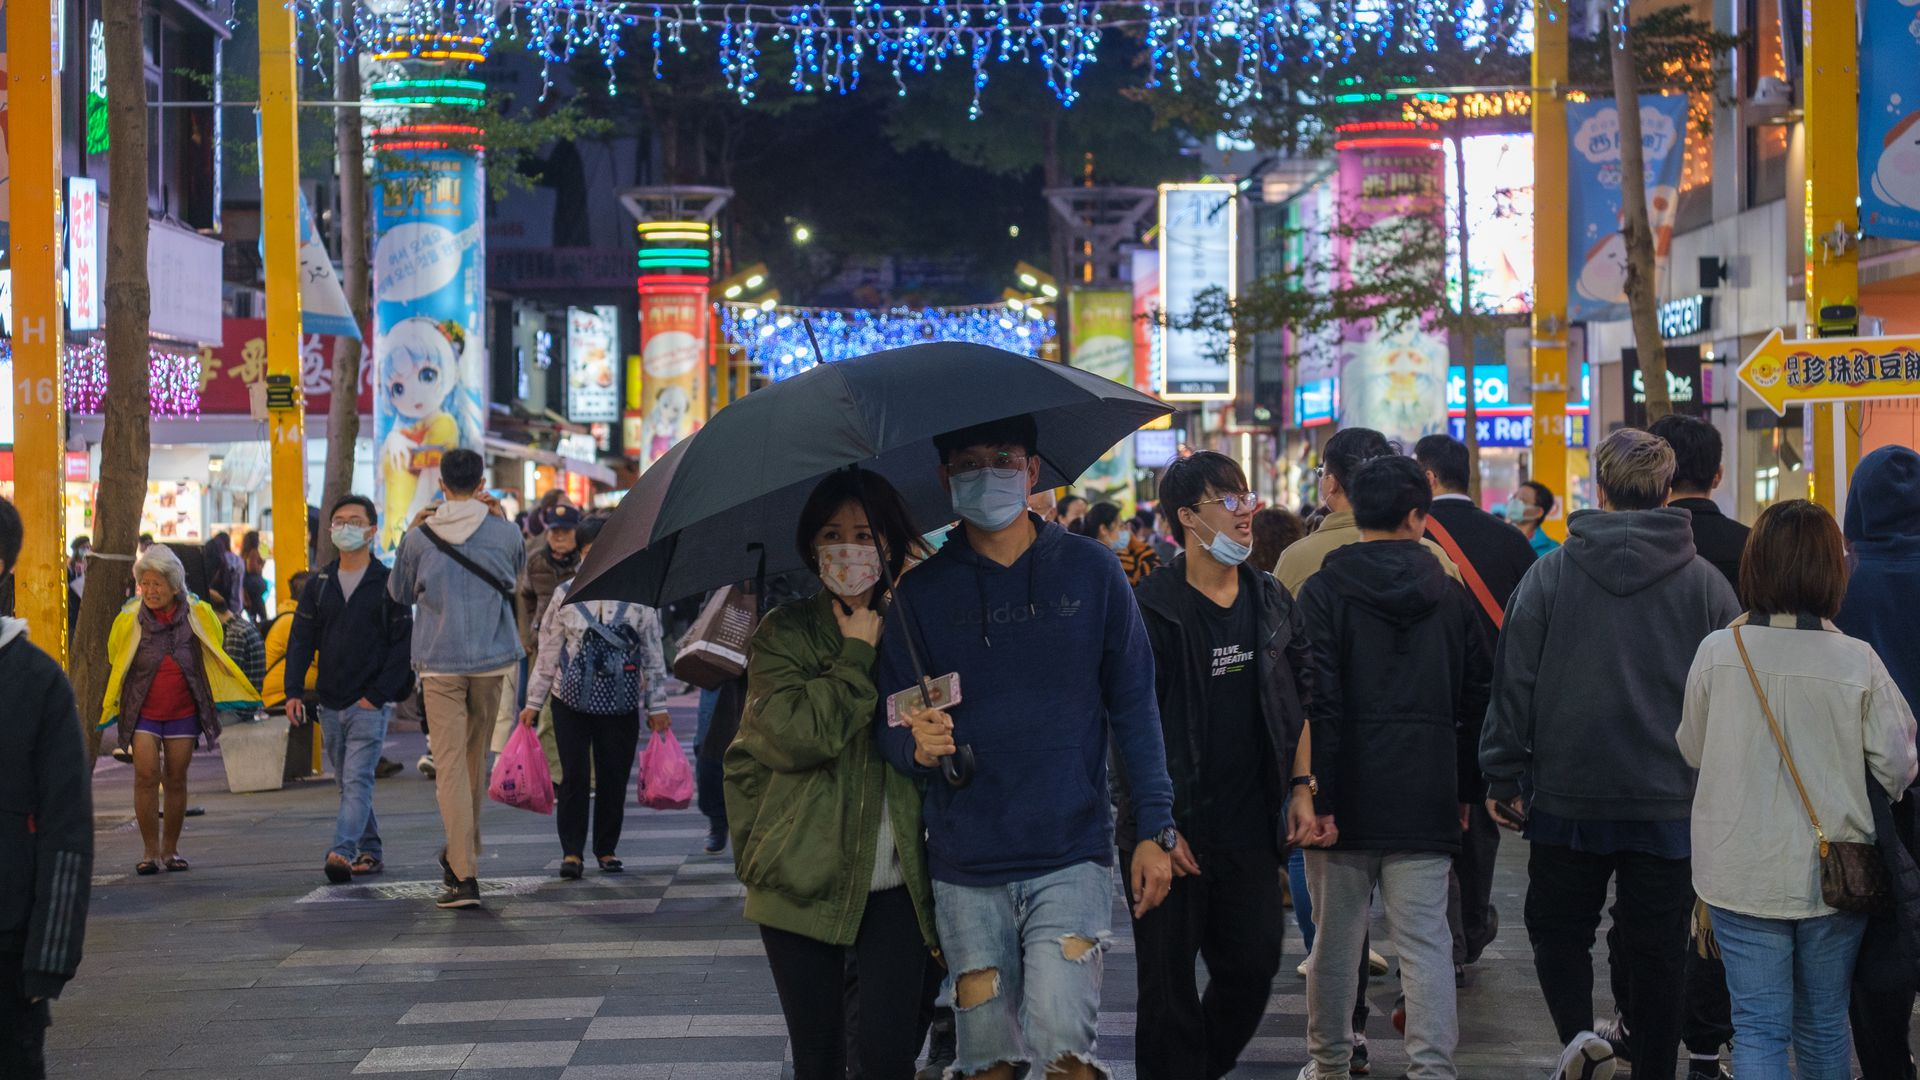 eople wearing face masks shop in Ximen, Taipei, Taiwan on December 05